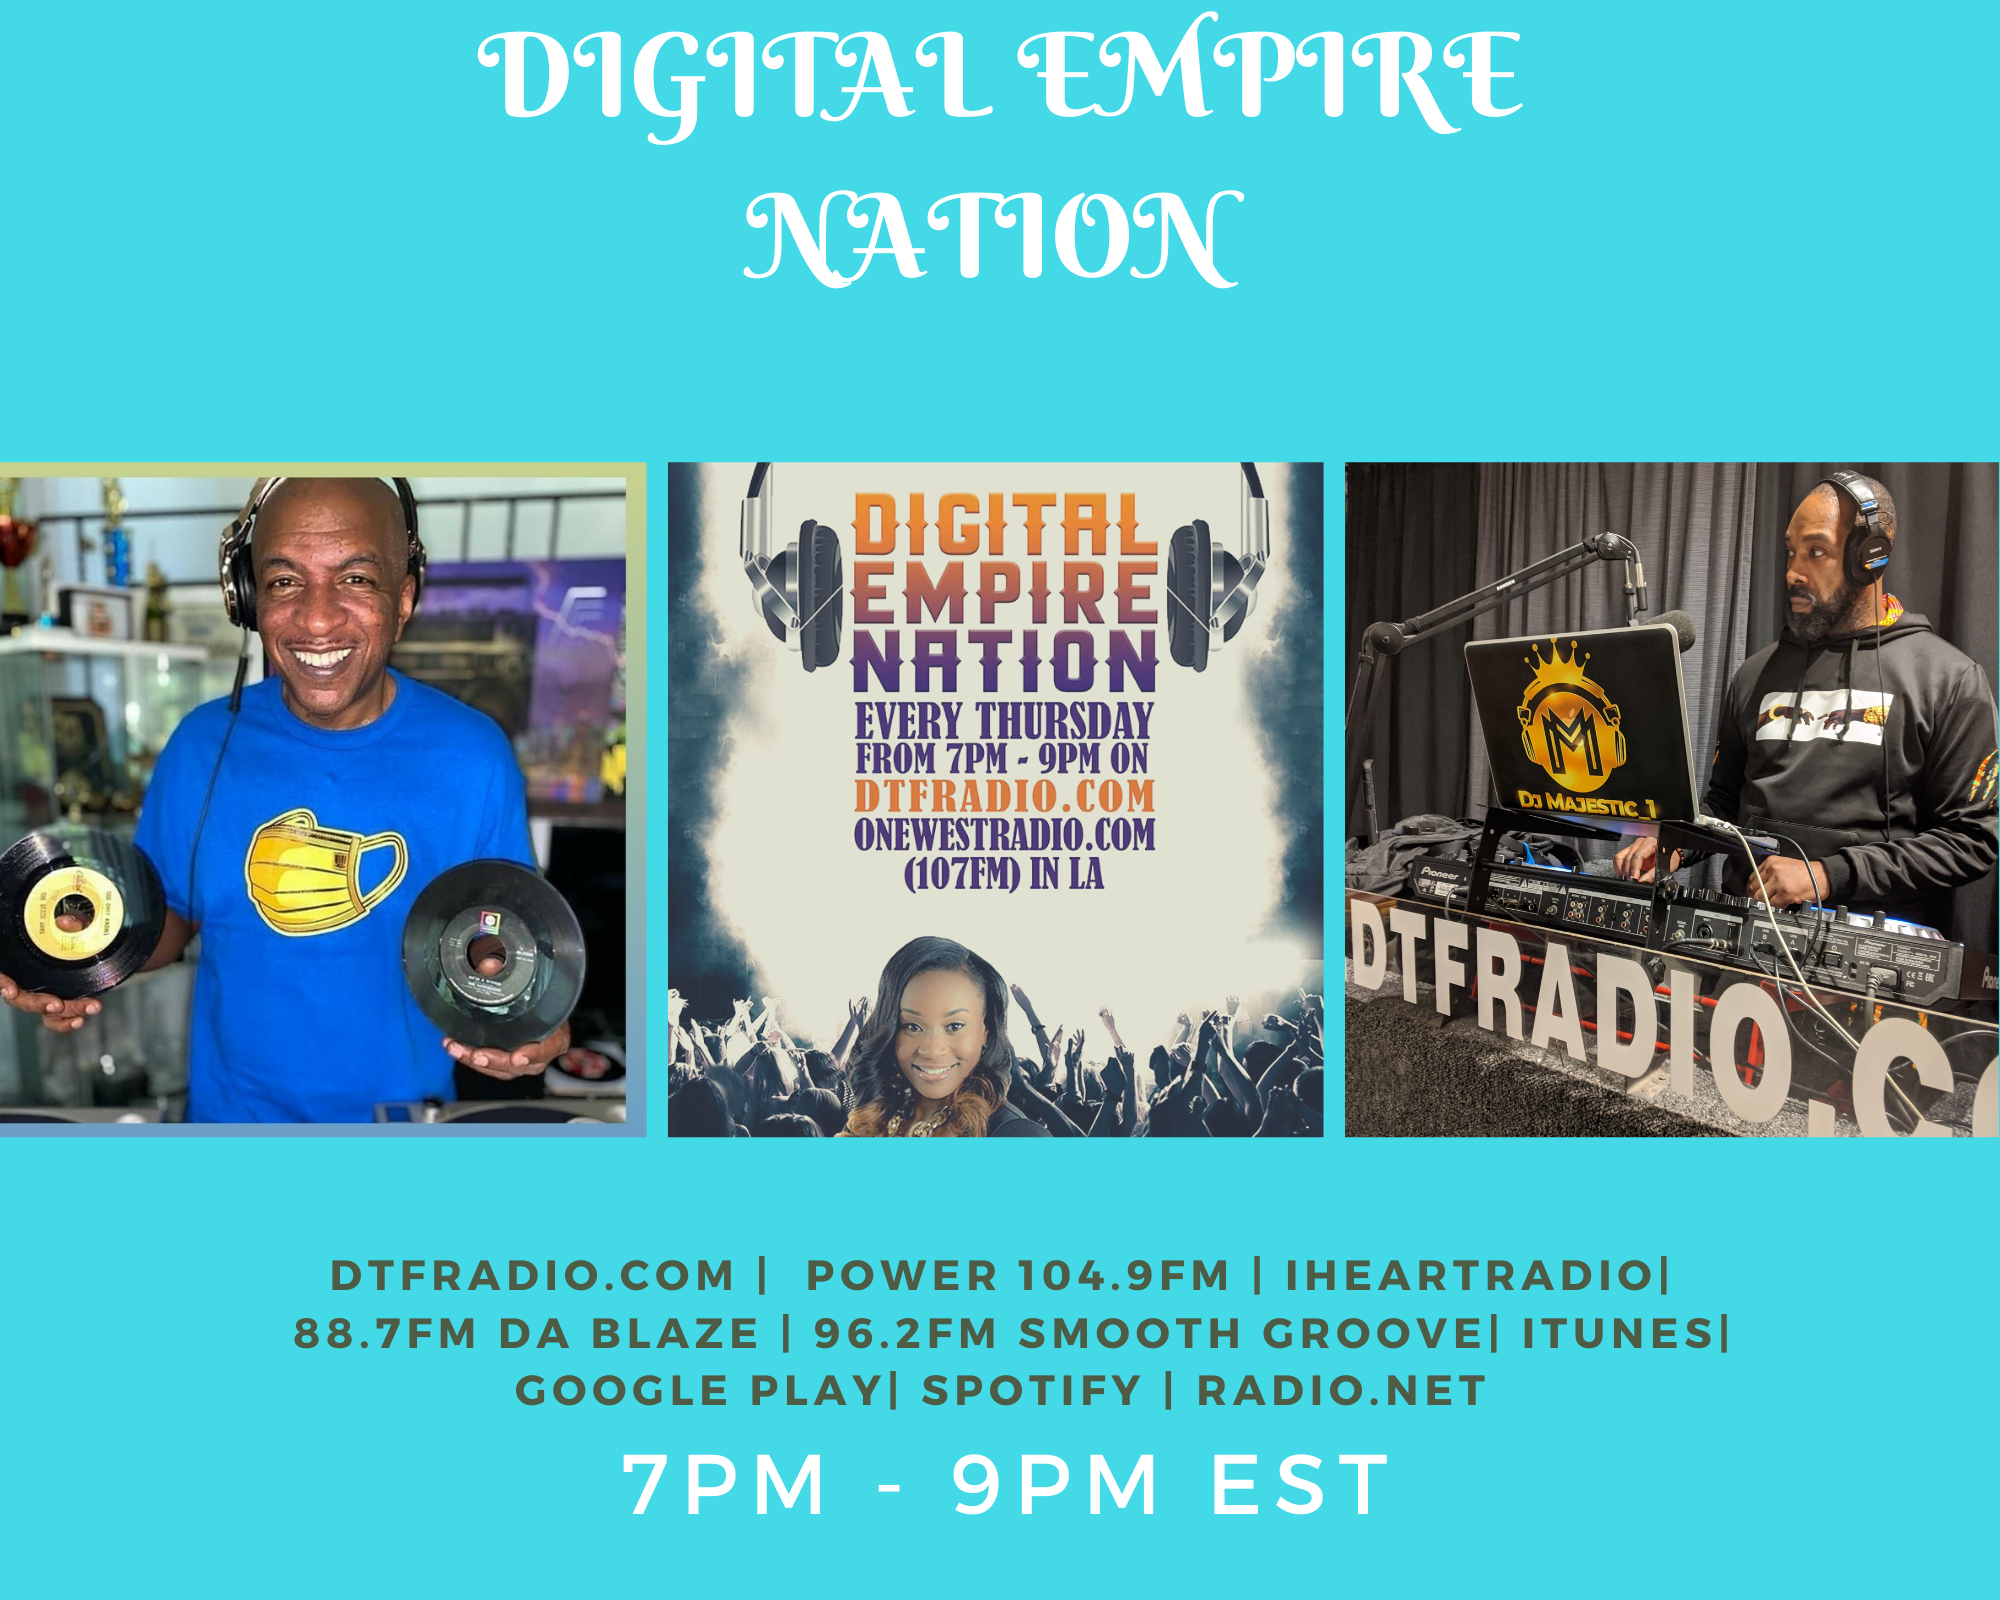 Special guest Ralph Mcdaniels of Video Music Box